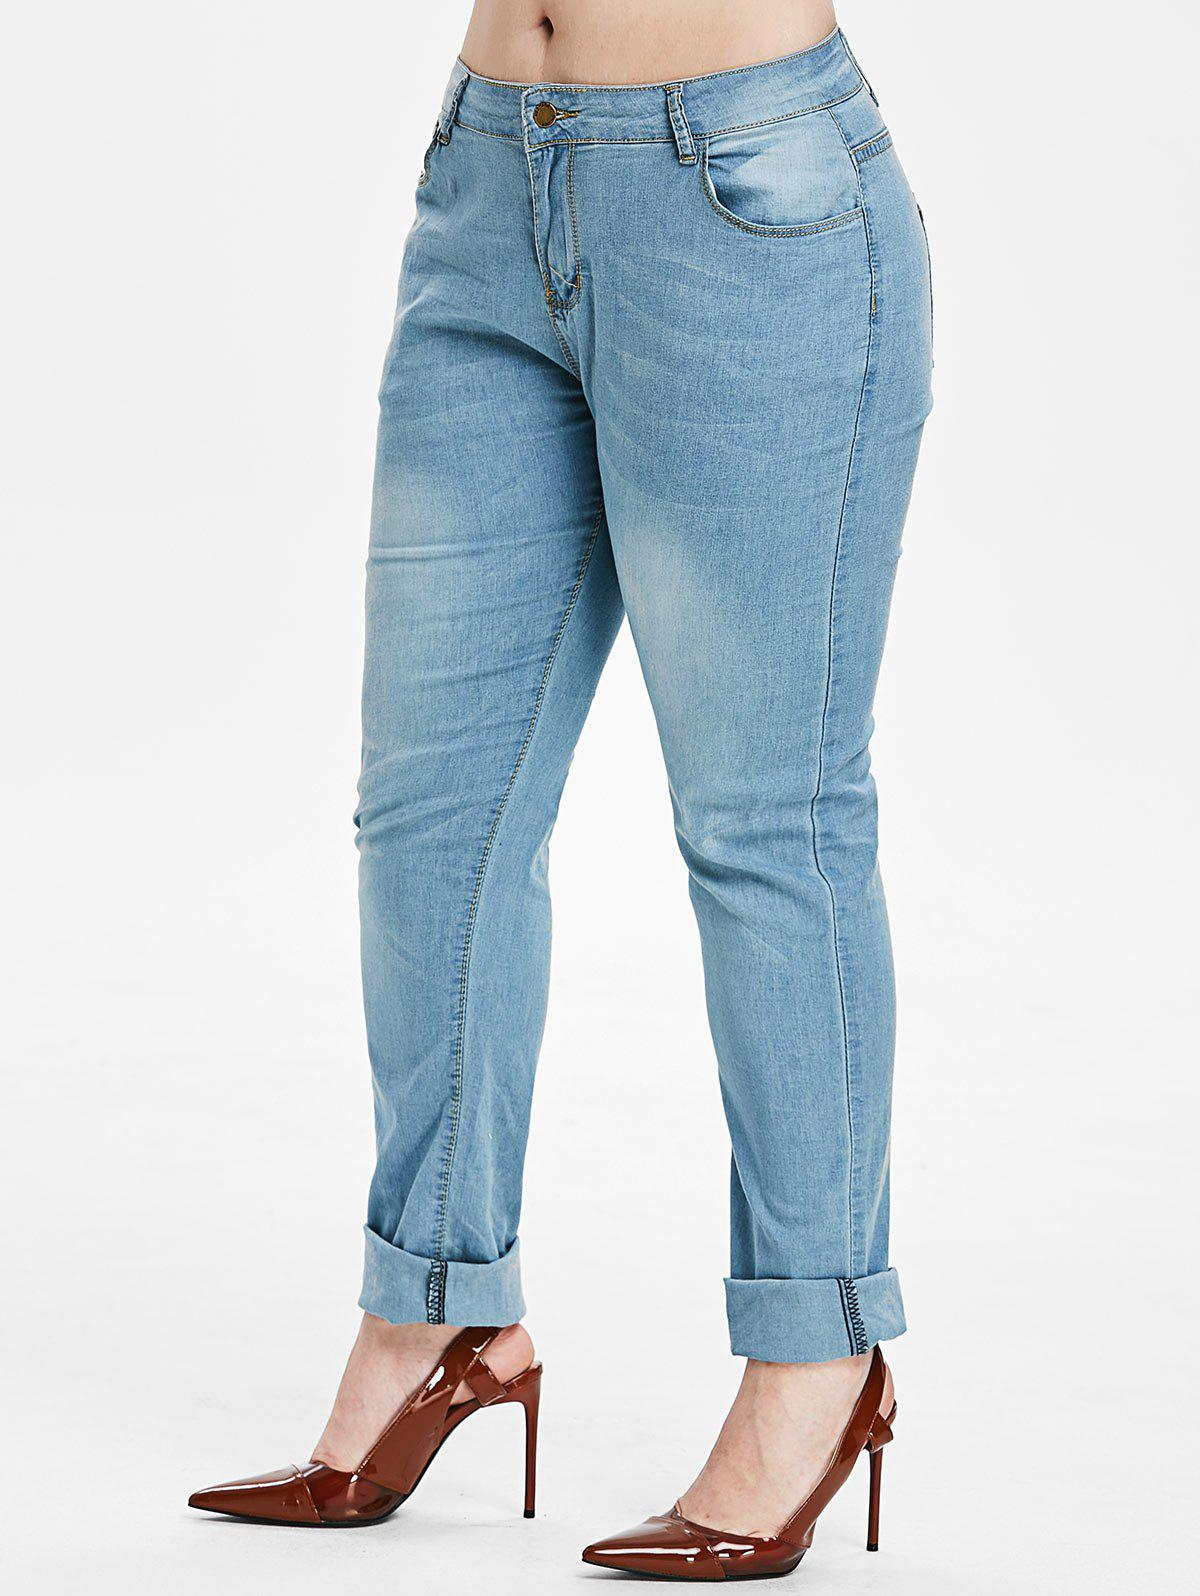 Light Wash Plus Size Pencil Jeans - LIGHT BLUE 5X